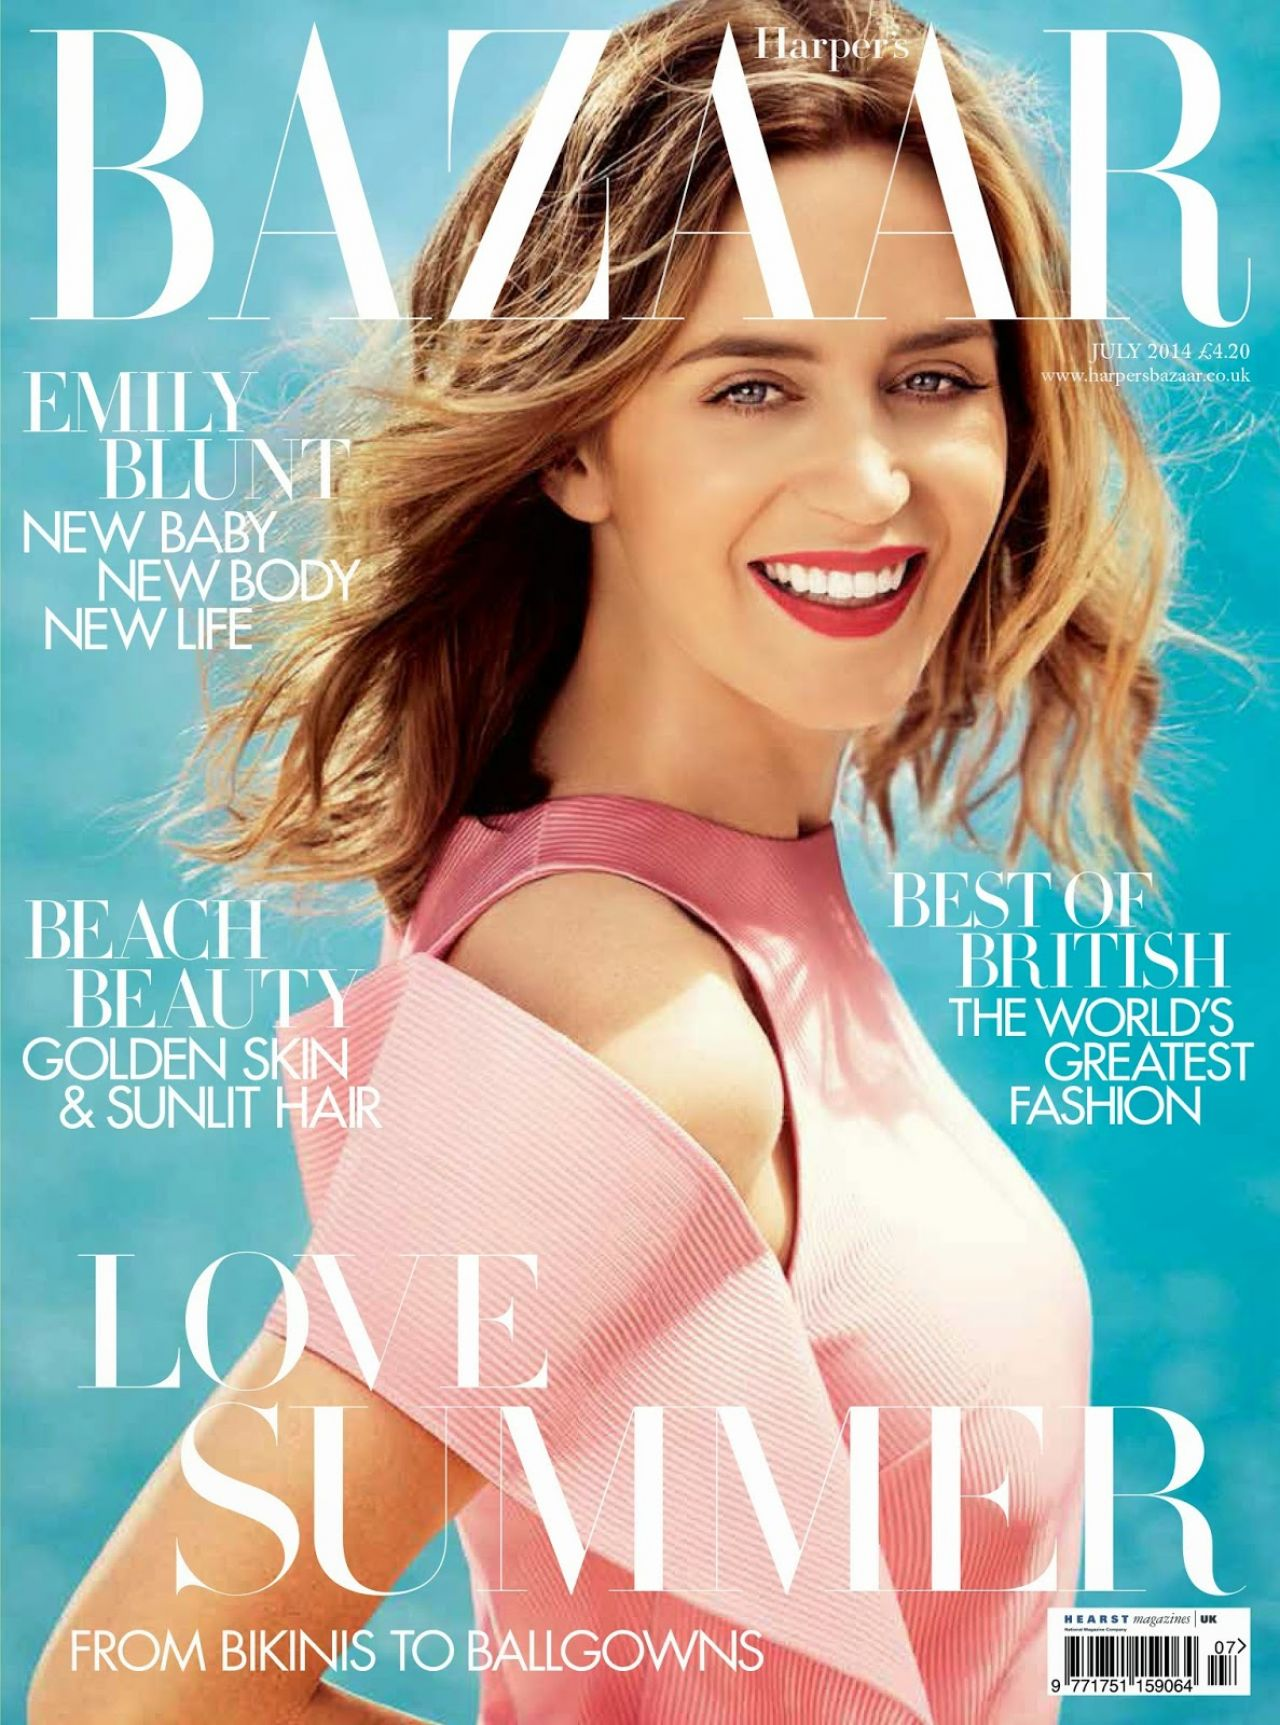 Emily Blunt: Harpers Bazaar Magazine UK July 2014